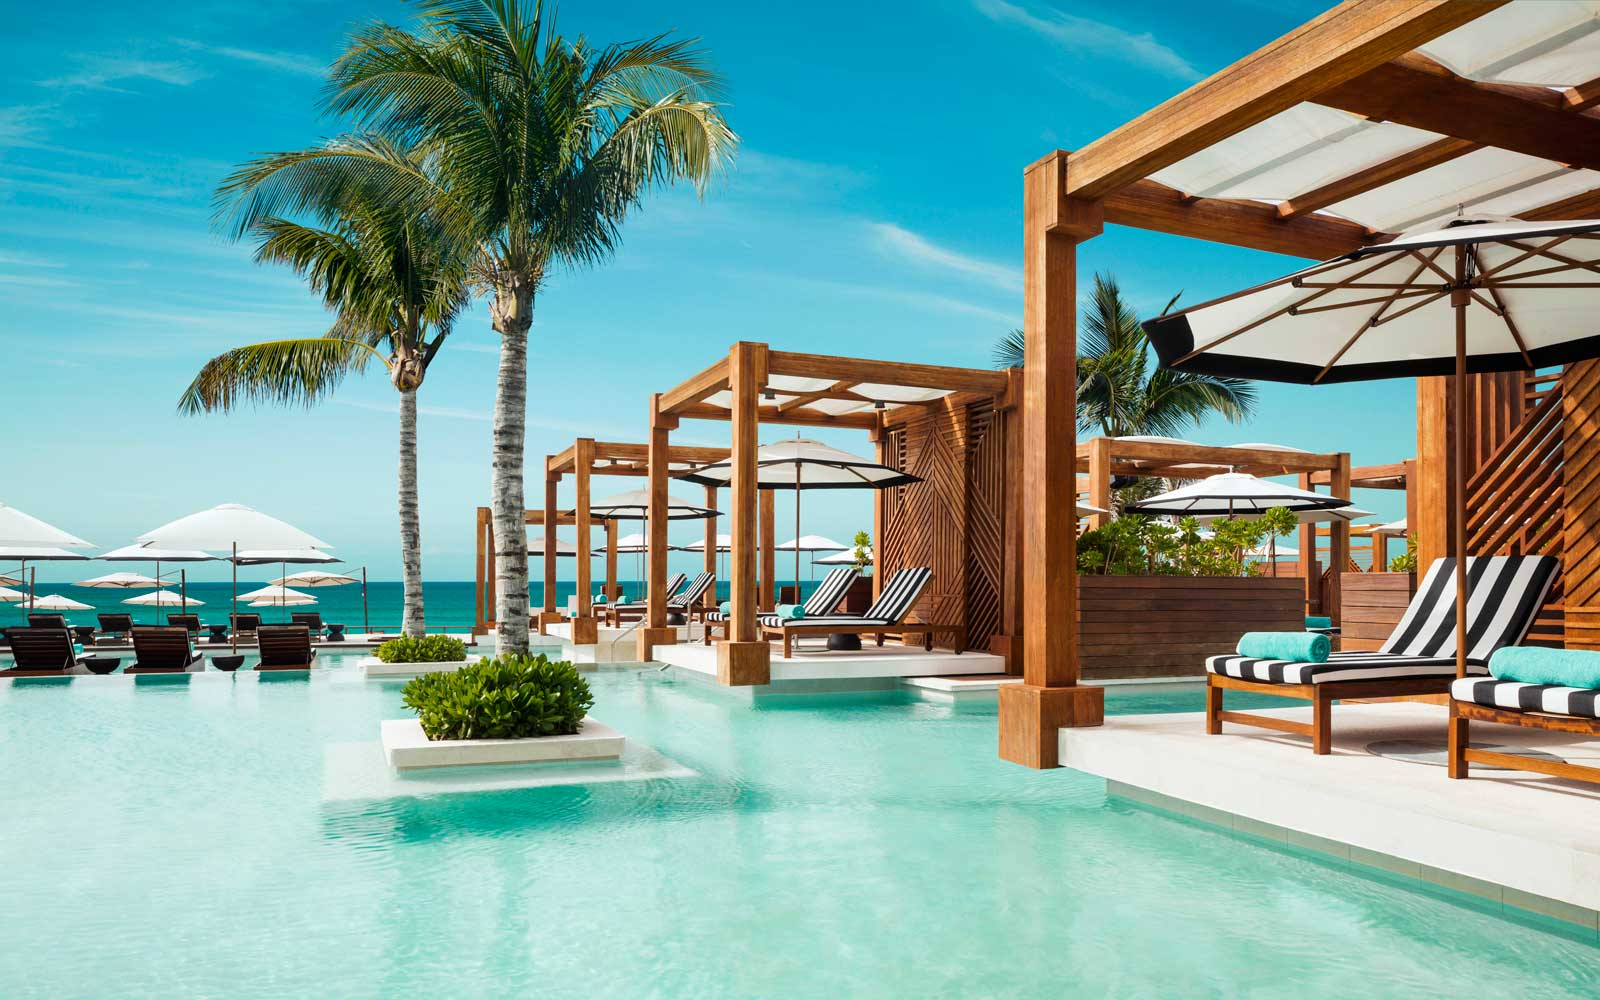 You Could Get Paid $120,000 to Spend a Year at Some of Mexico's Most Beautiful Resorts